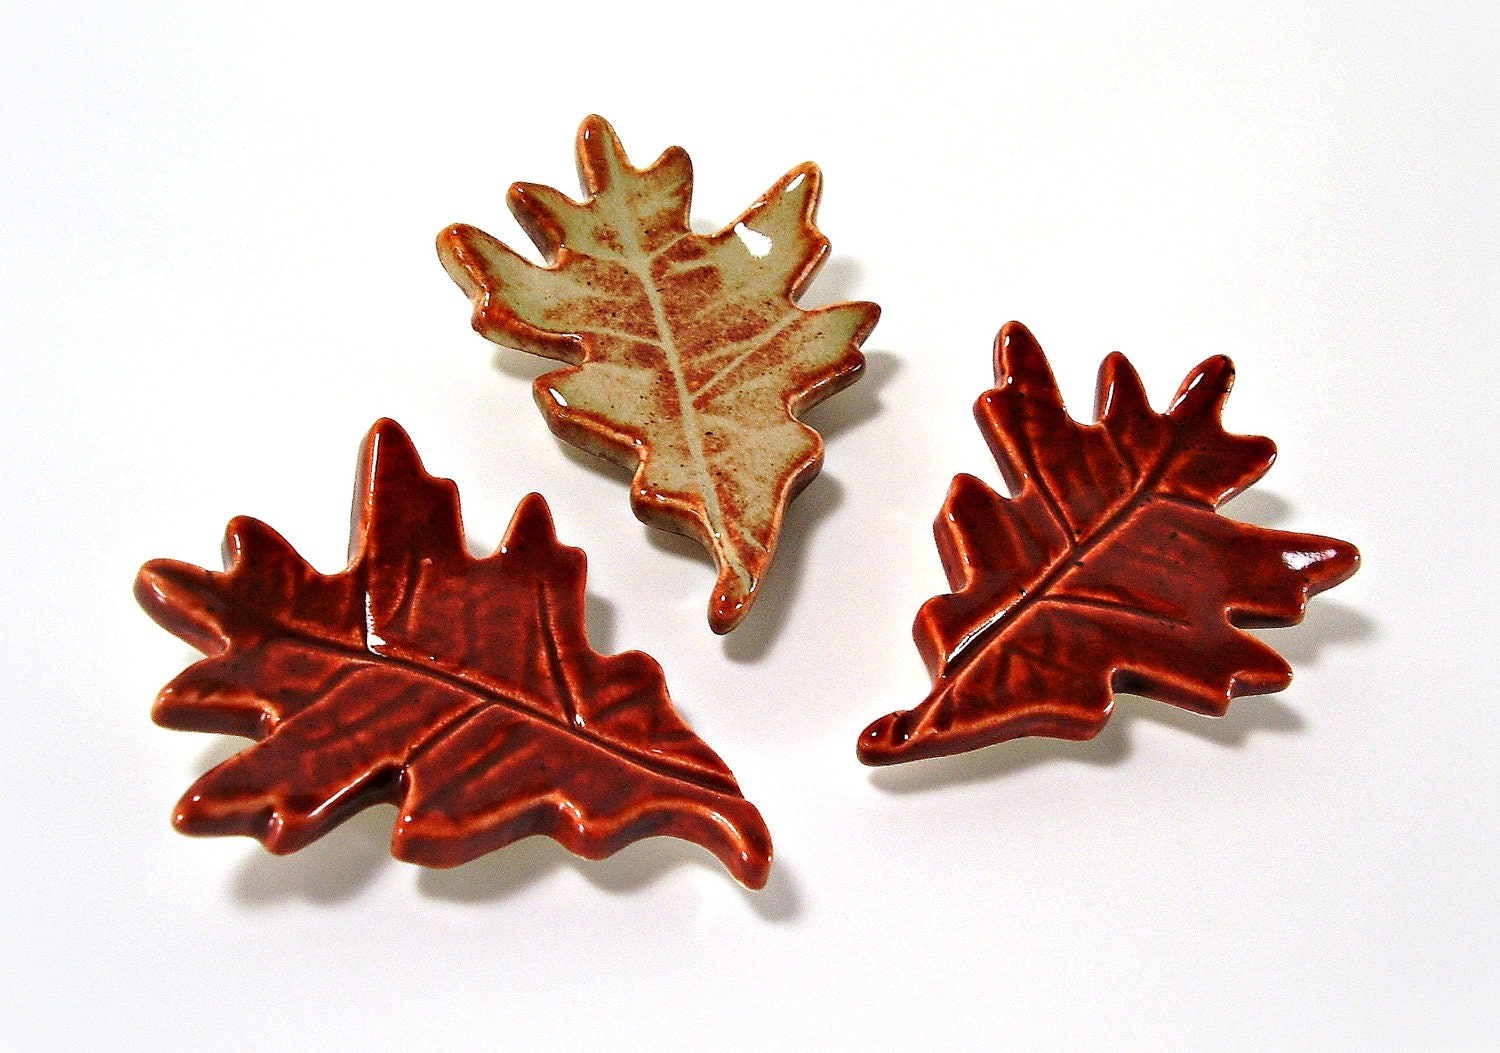 three ceramic pin oak magnets refrigerator memo board gift fall leaves autumn rust and burnt orange handmade pottery - Ravenhillpottery